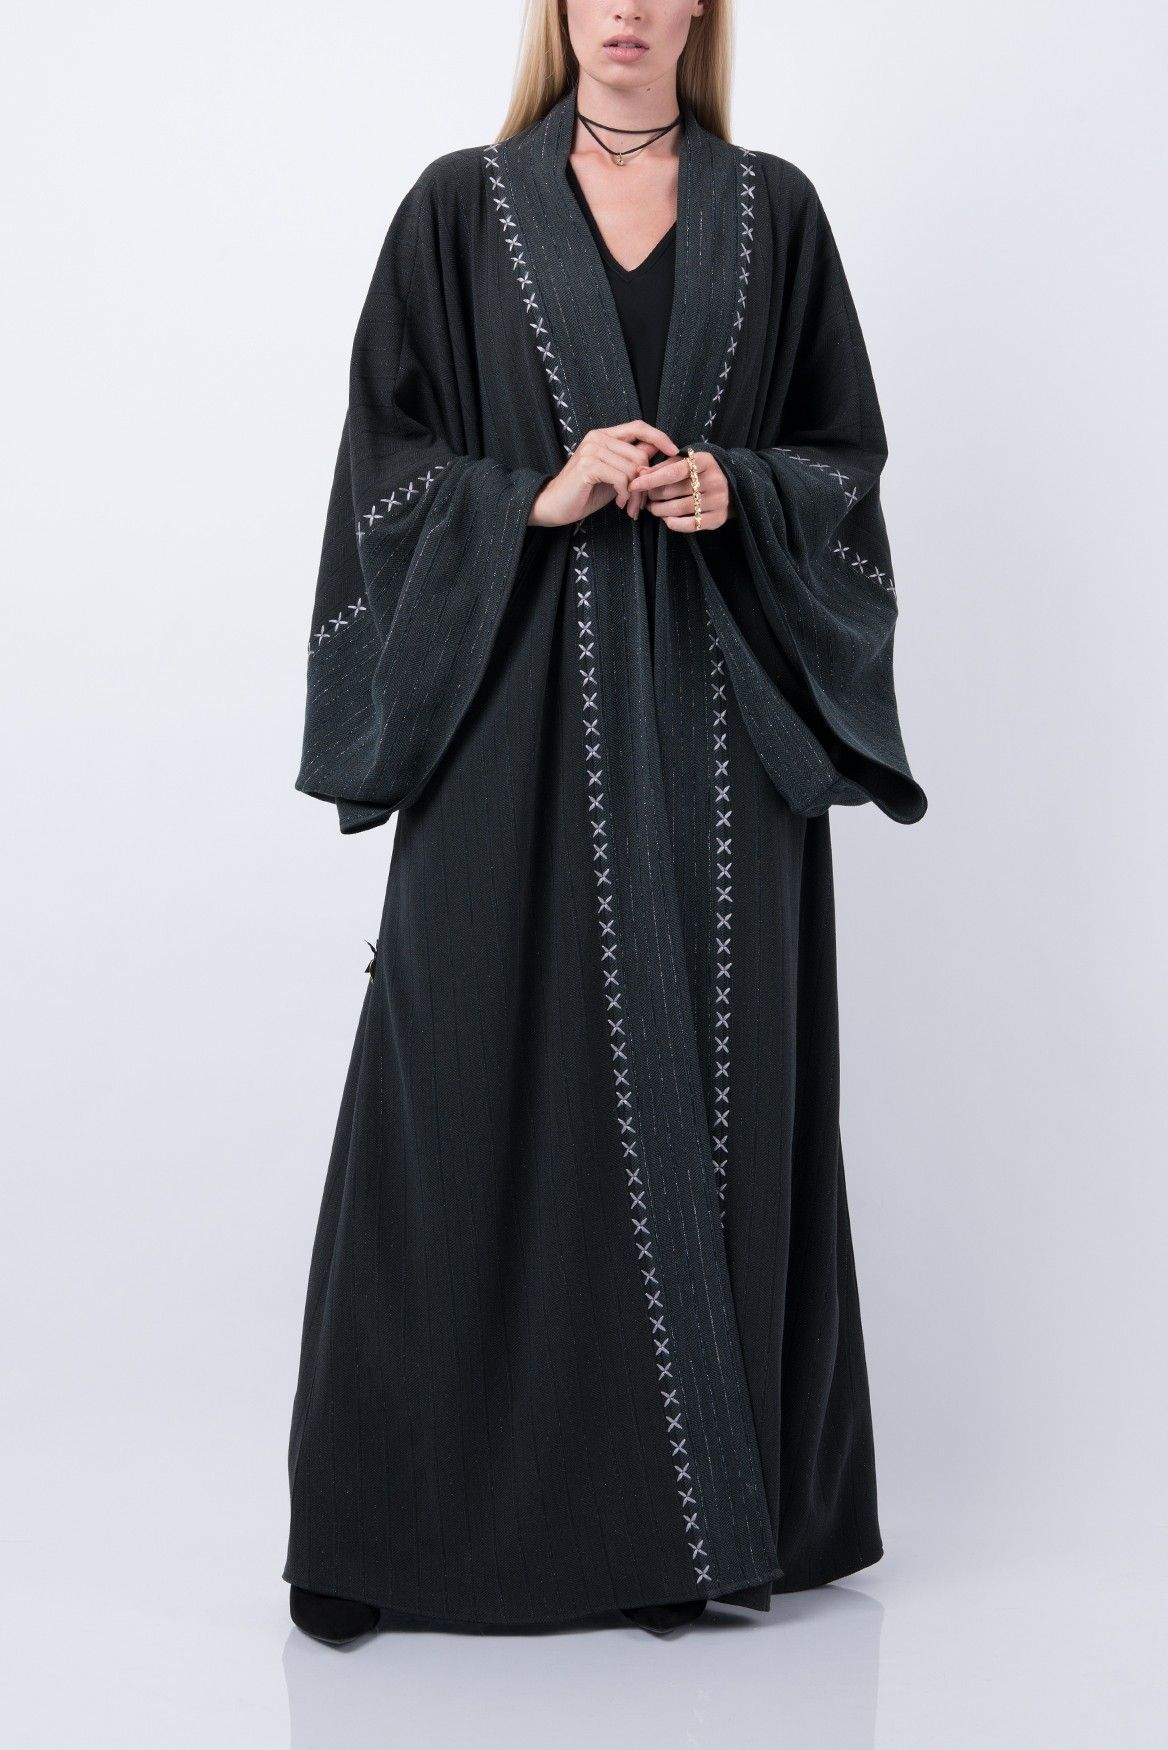 5b9e4adfff Abaya by Moonlight witches robes wizarding style witch fashion